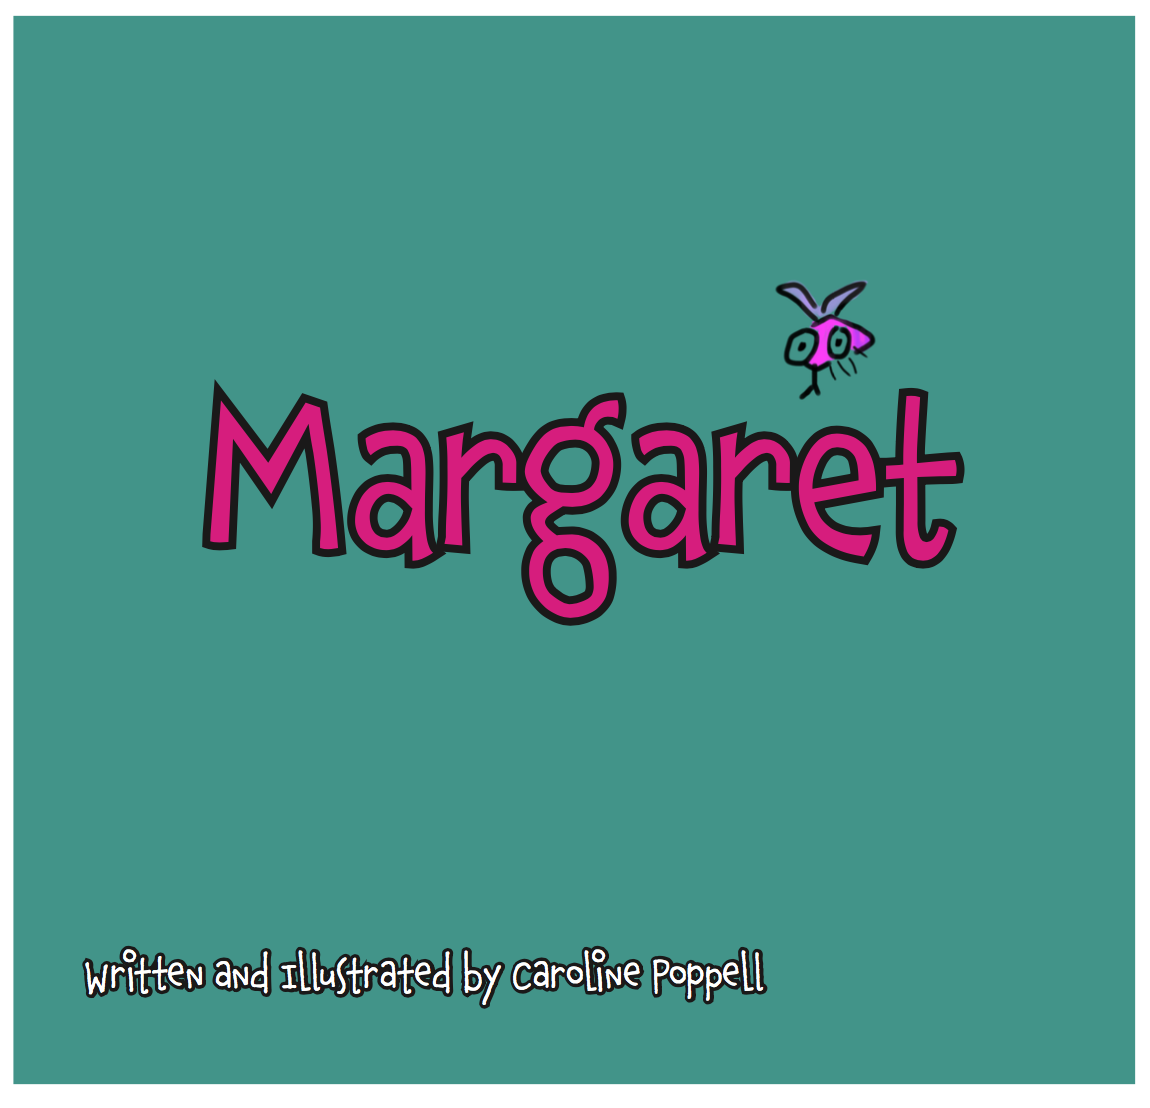 "margaret available for purchase! - ""Margaret"" chronicles the doings of a mosquito on her birthday. As children follow Margaret along her journey, they will get a glimpse of the world through a mosquito's eyes and learn lots of cool mosquito facts in English and Haitian Creole. Purchase your copy at http://www.milkcartononastring.com/little-twit-publications/"